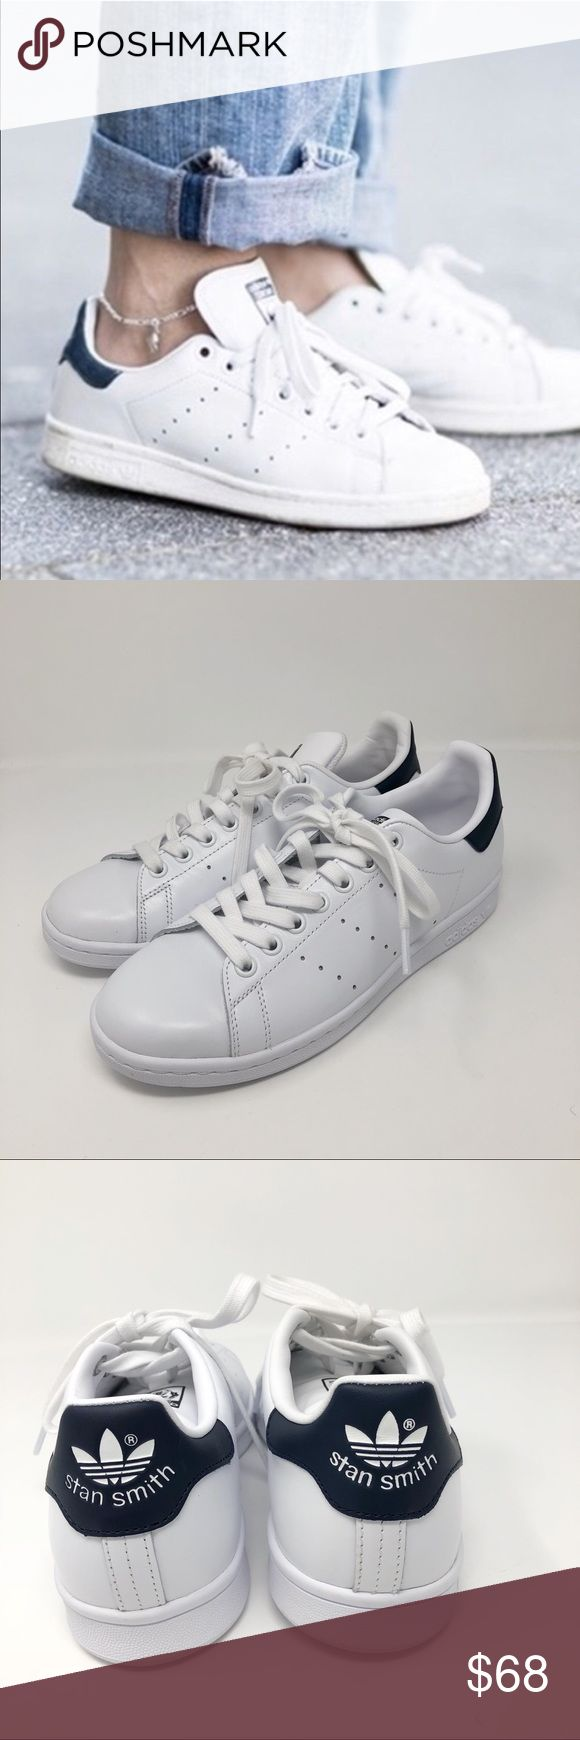 adidas gazelle grey solar pink adidas stan smith green sneakers bloggers wanted